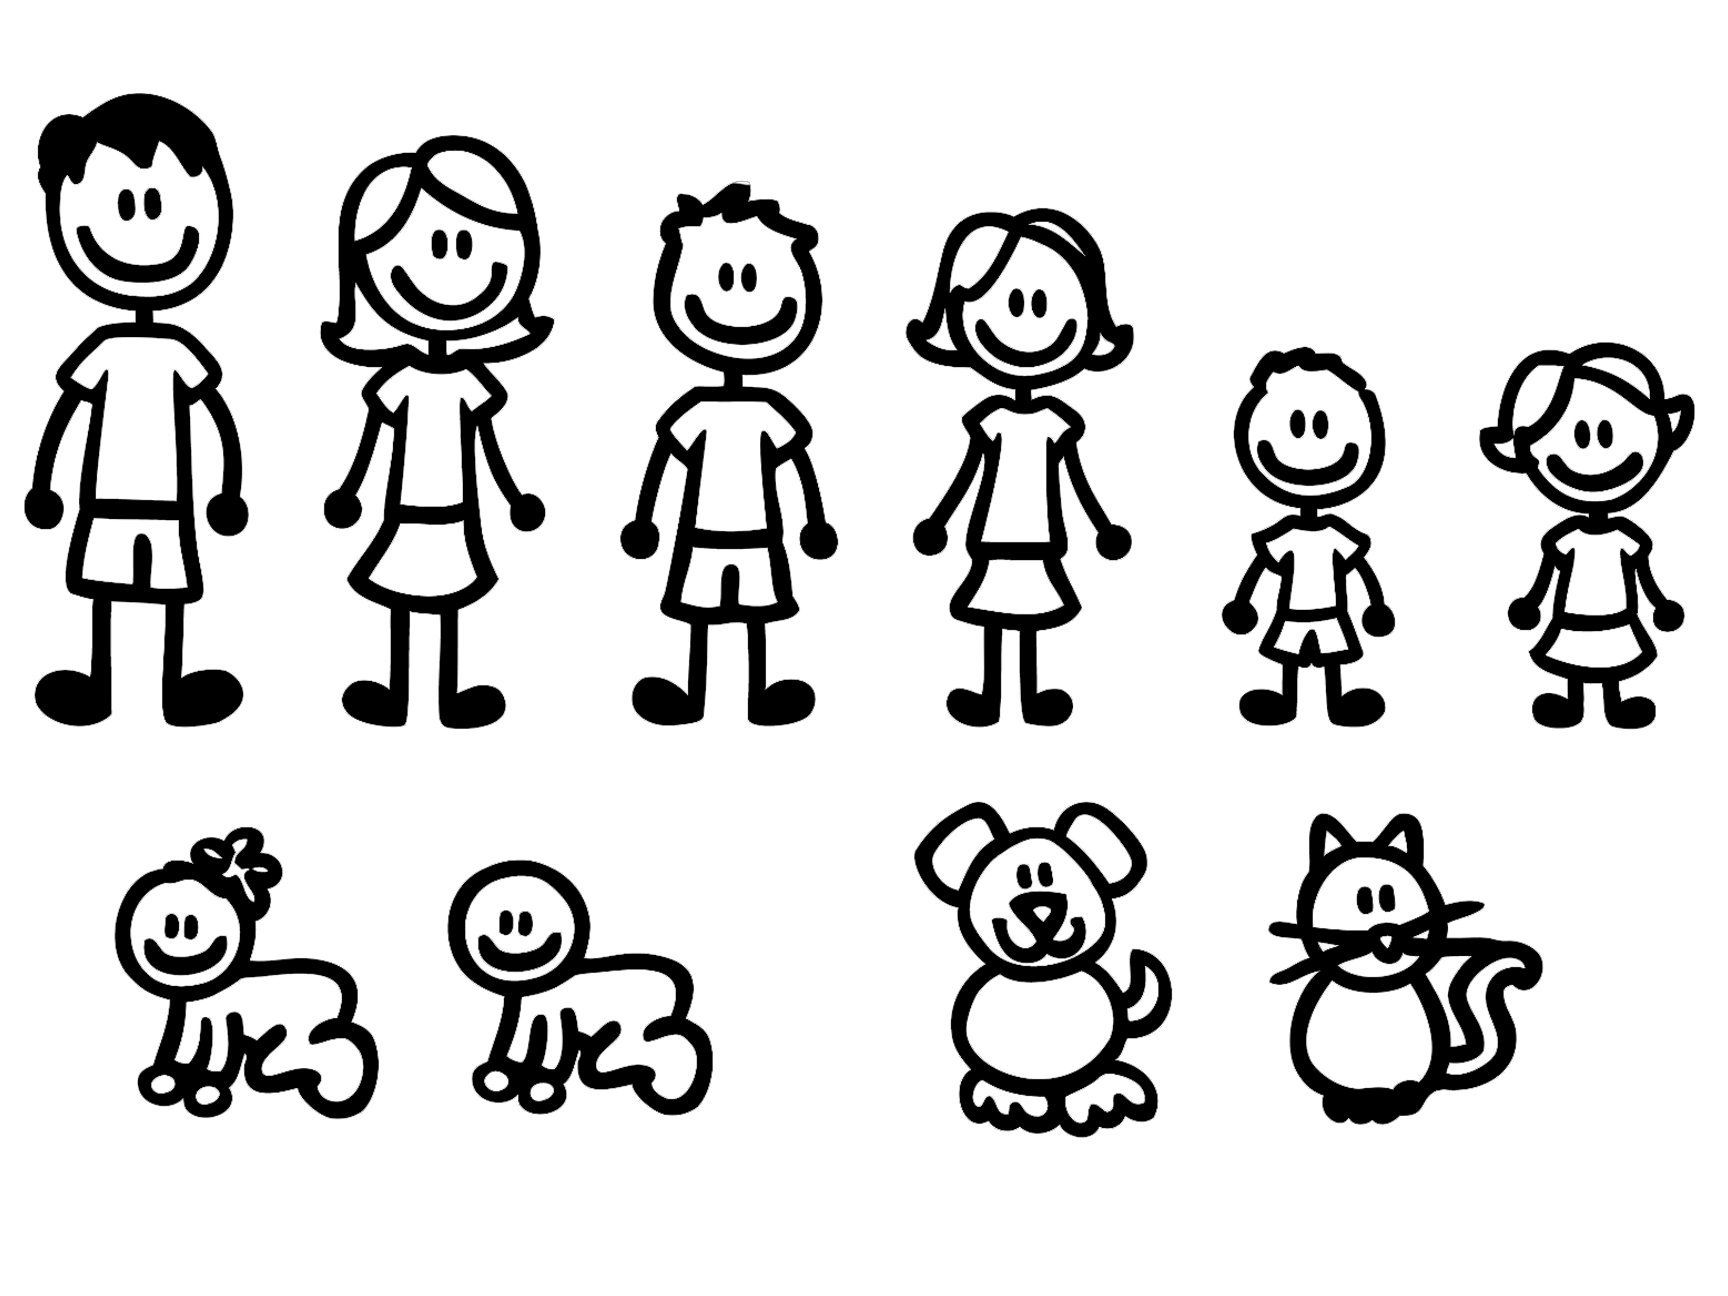 Family clipart 5 people stick people png royalty free library 10 STICK FIGURE FAMILY your stick figure family can be applied to ... png royalty free library